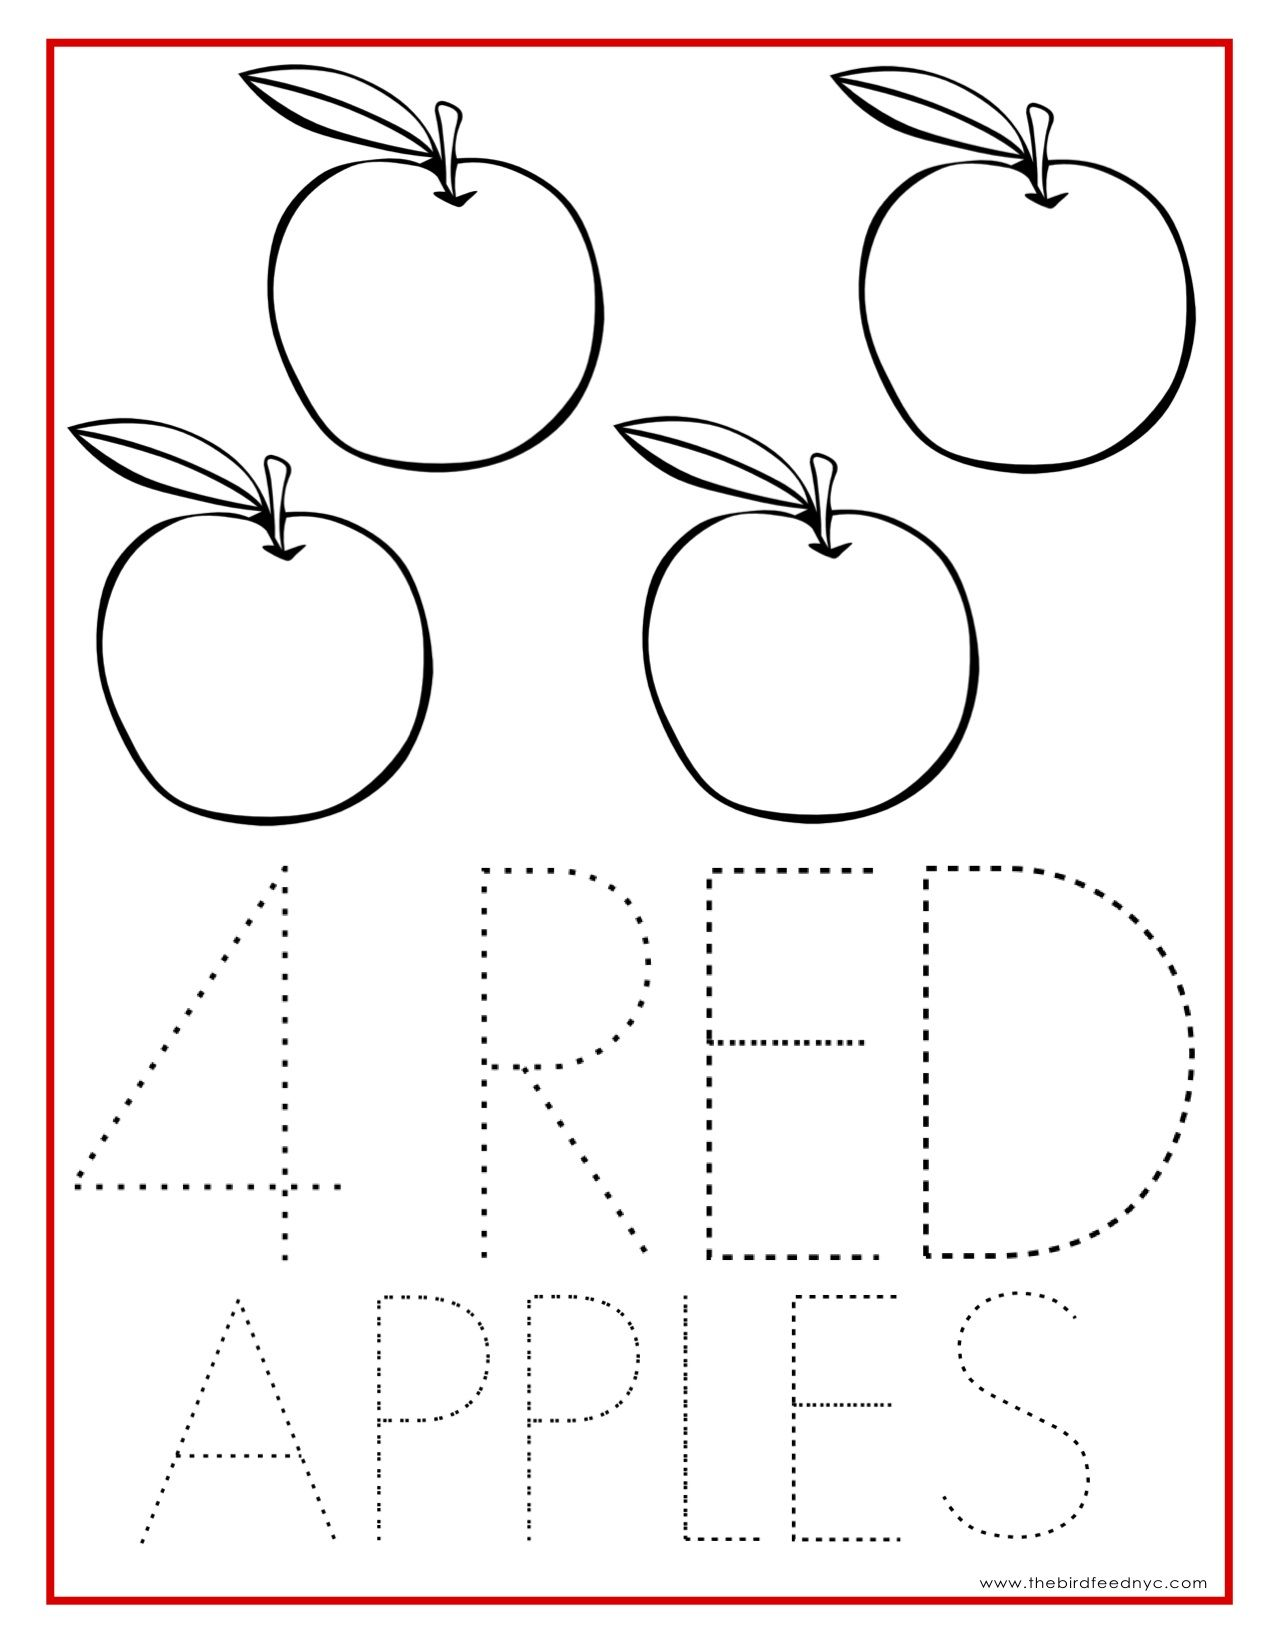 Number Coloring Sheet 4 Red Apples